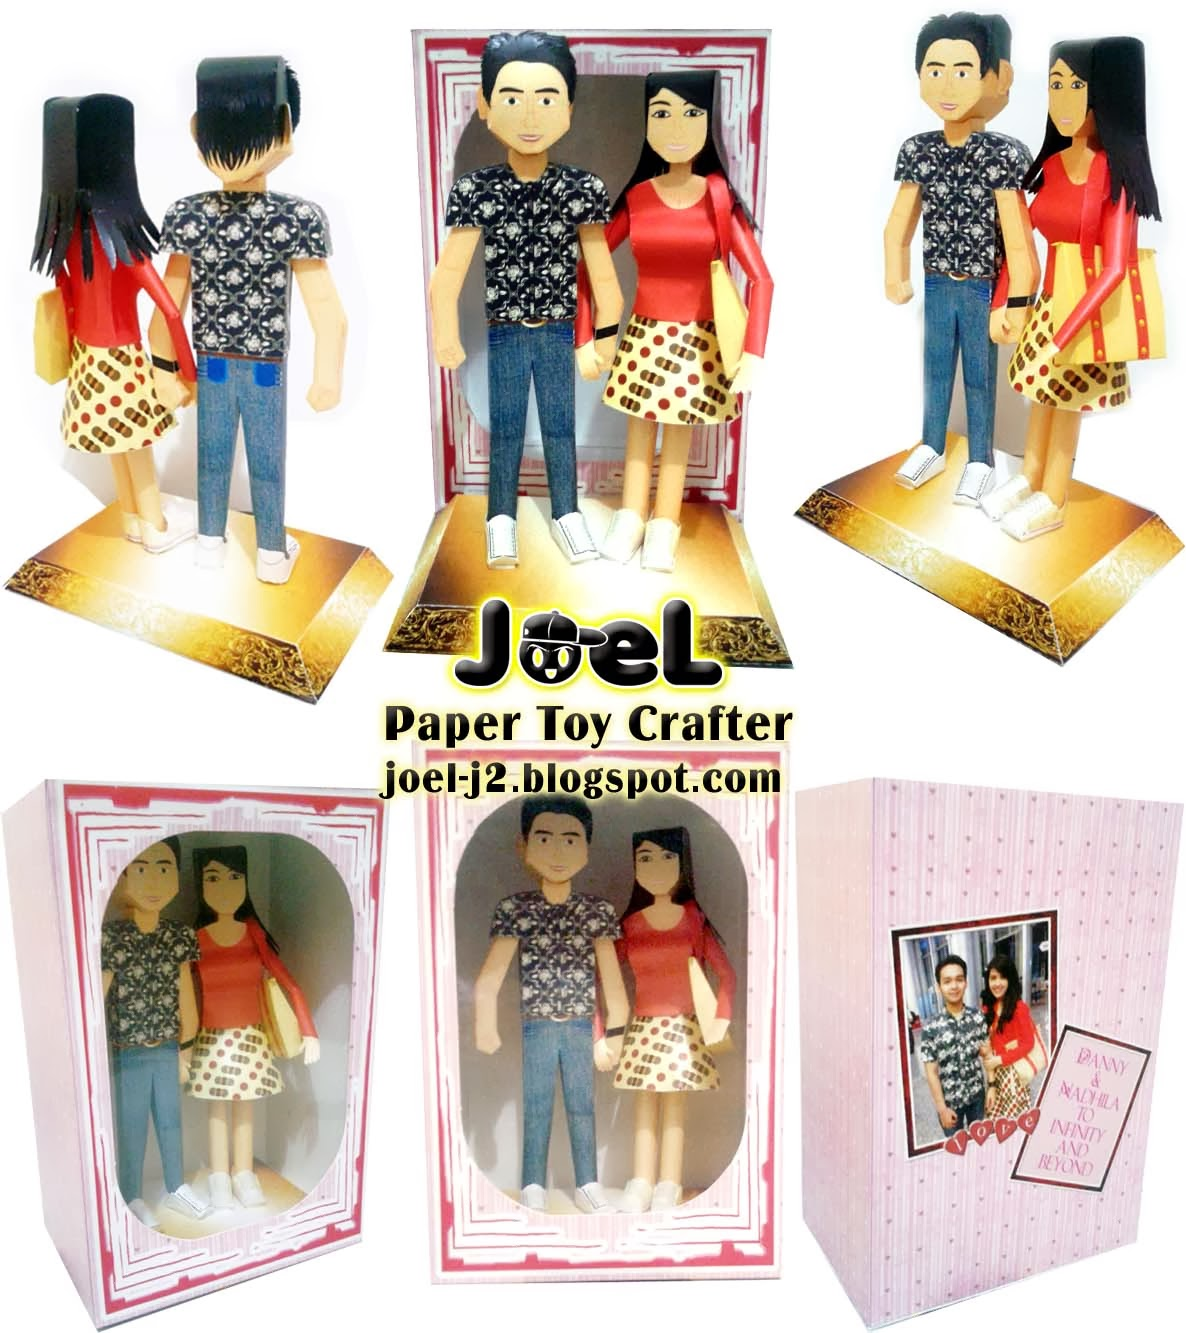 Couple papertoys